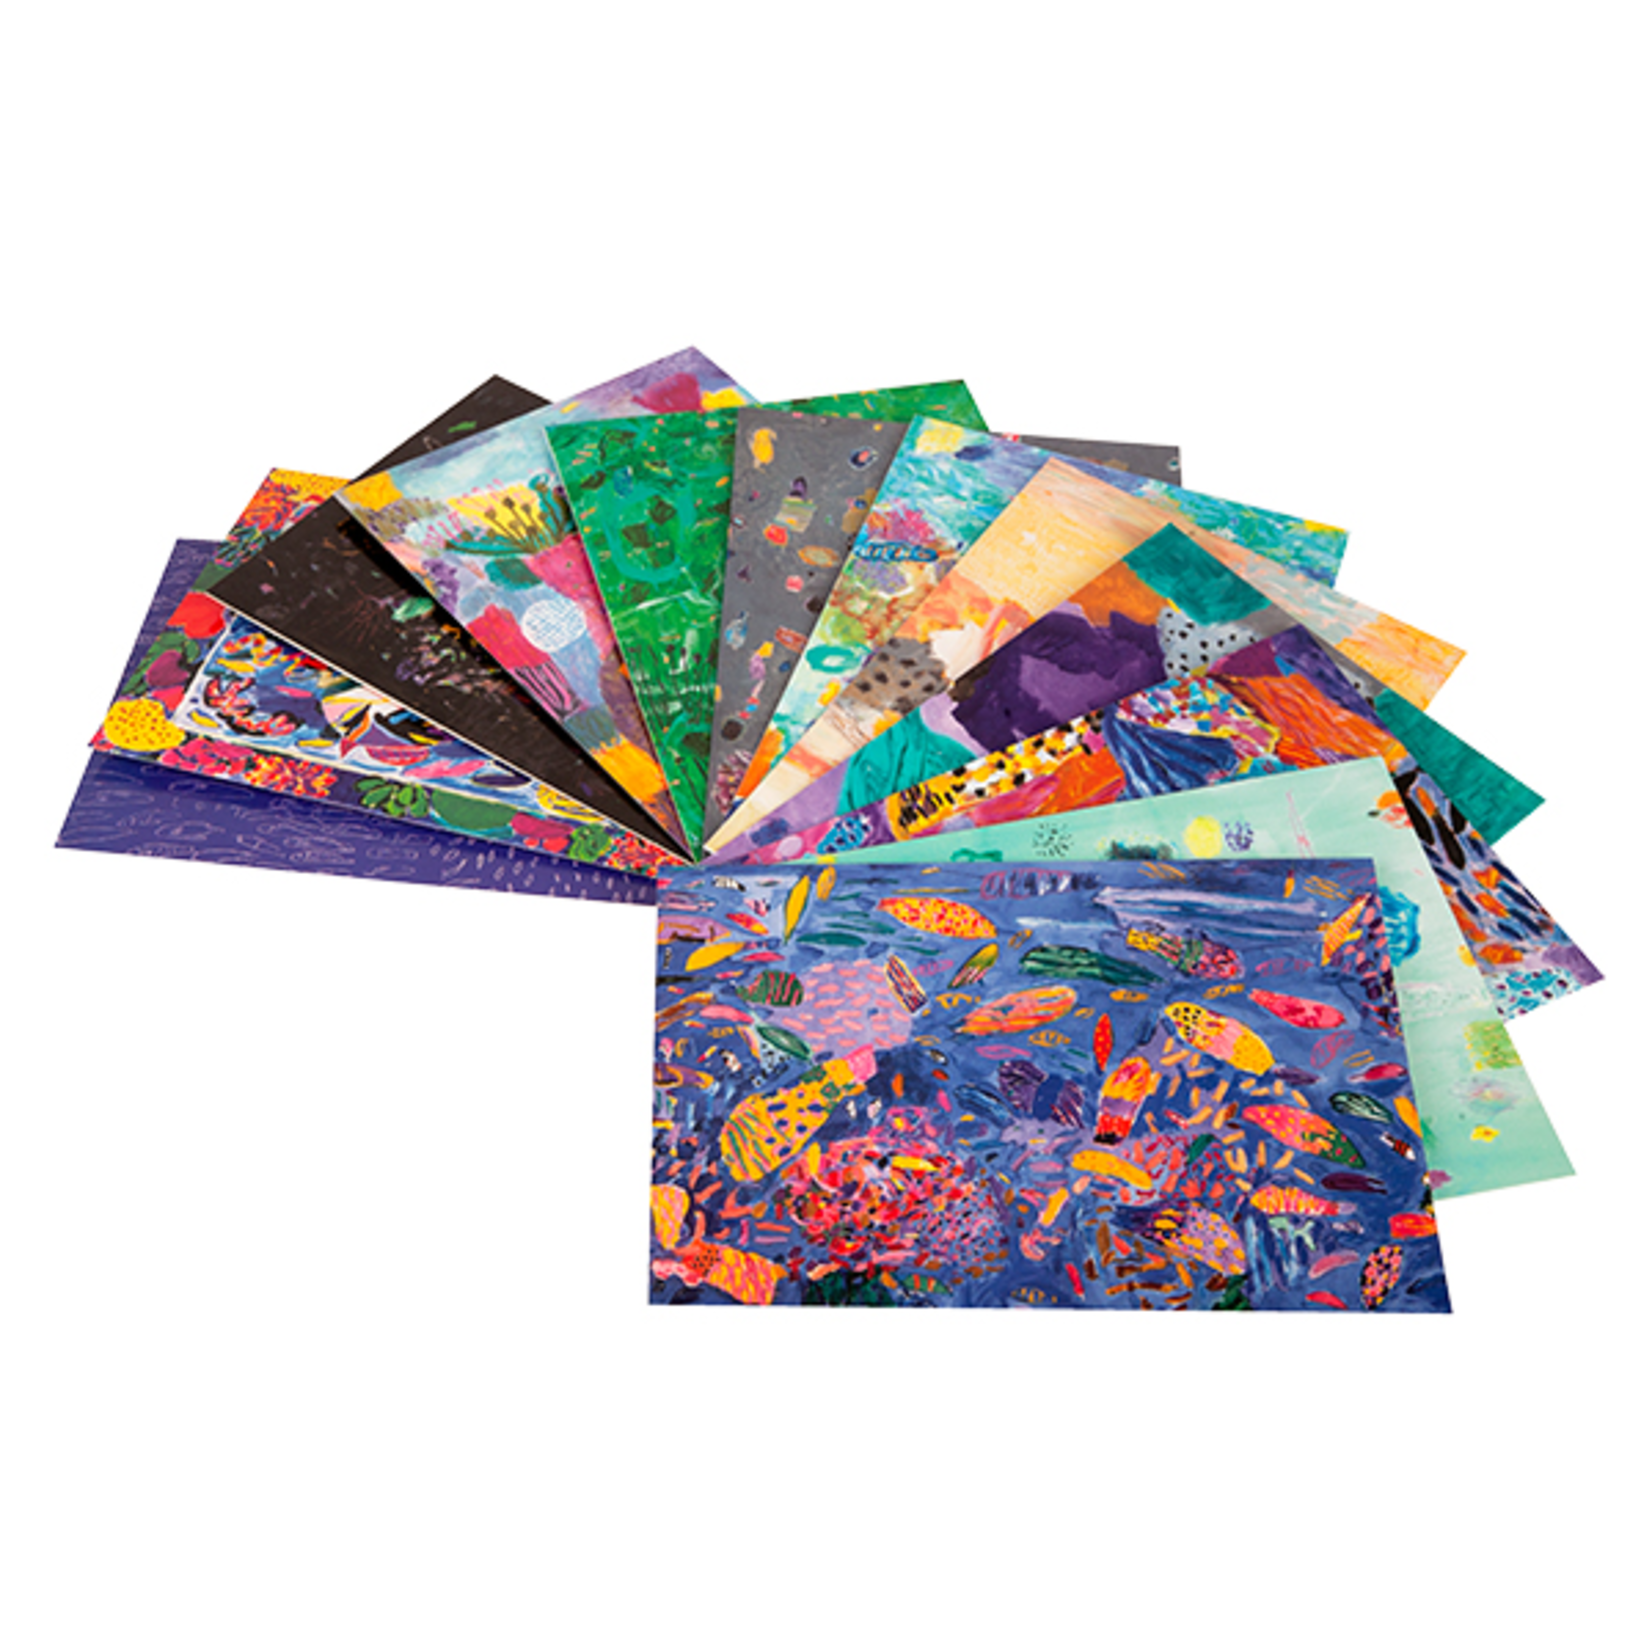 Books & Stationery Box of cards - Fish and Reef